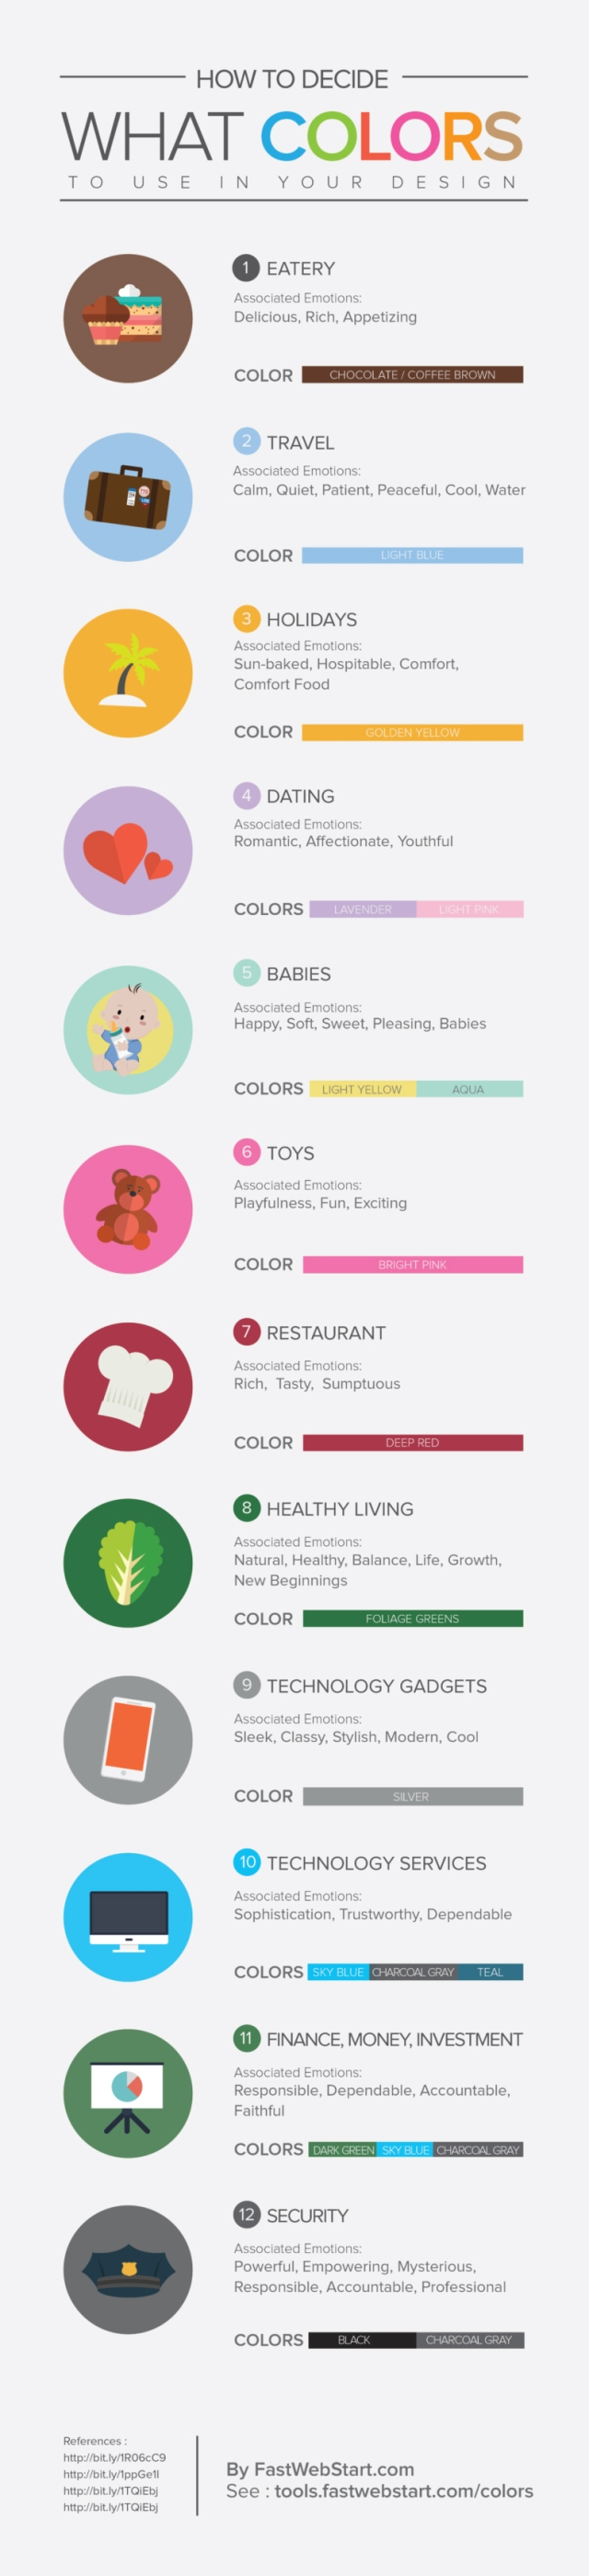 Colors for professional website - Chart On Colors And Business Sectors